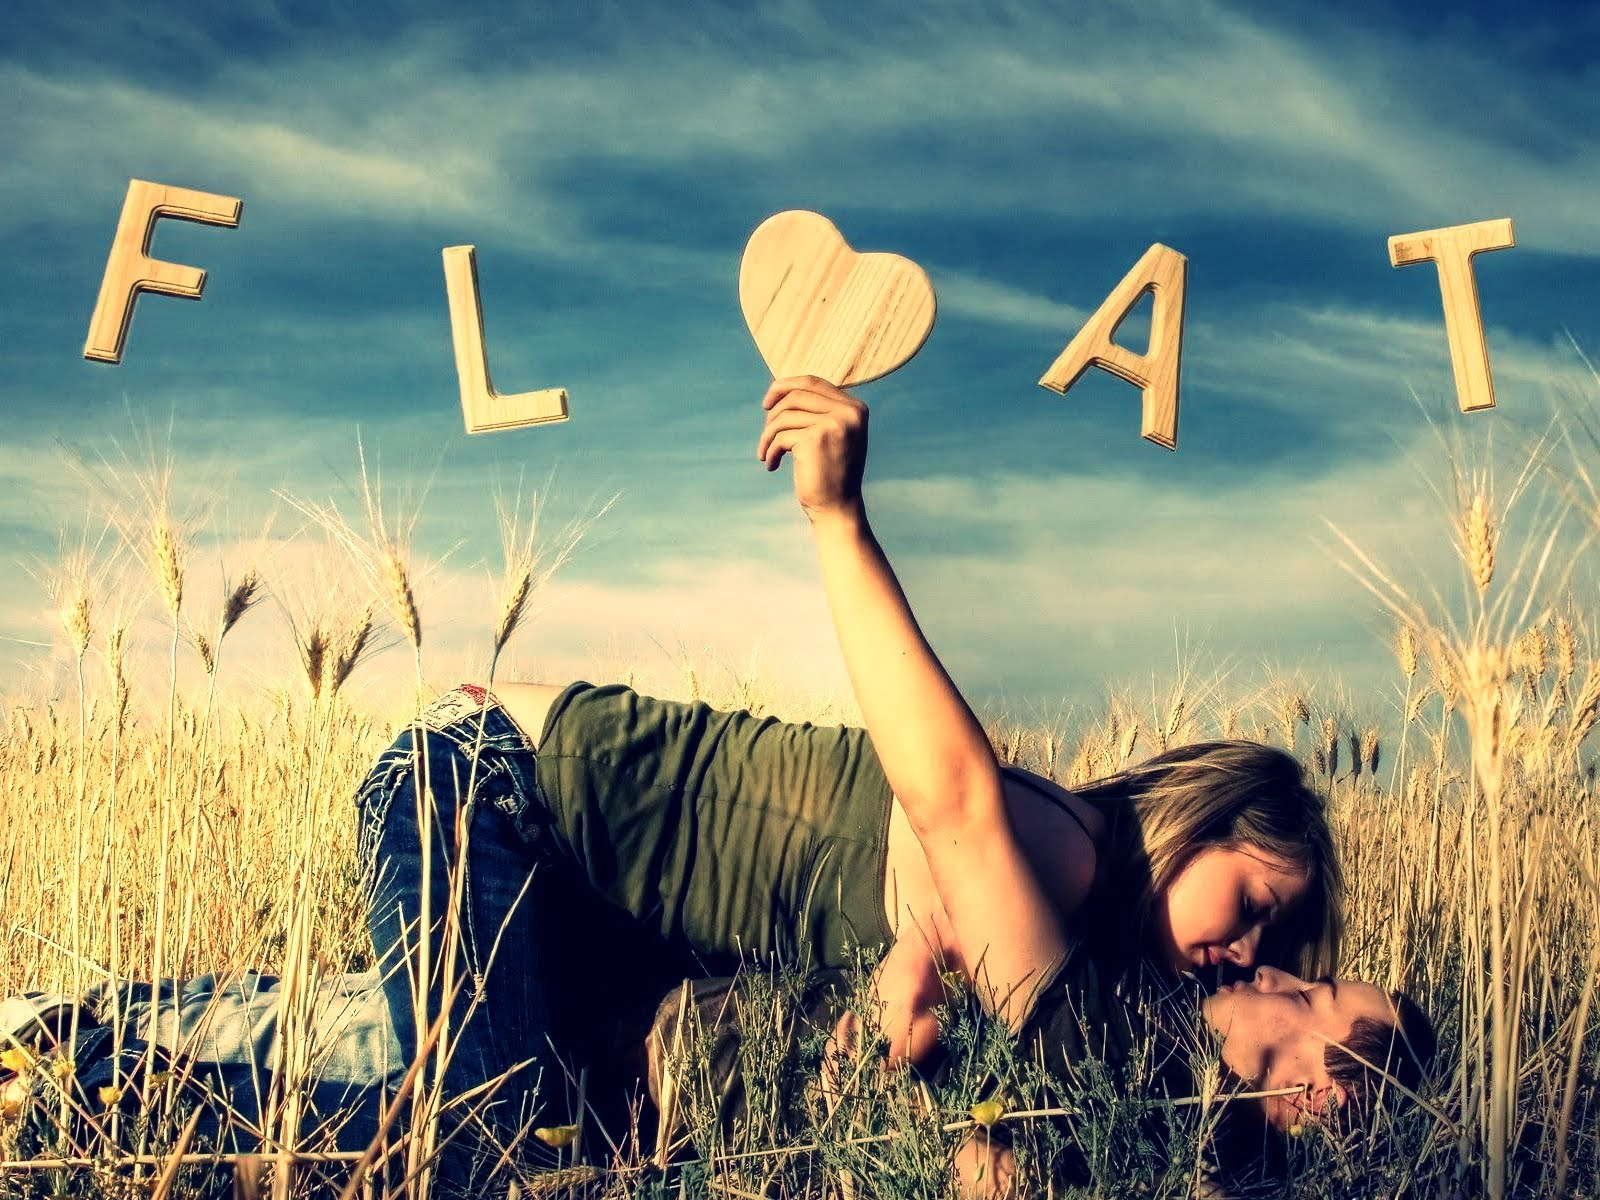 Love Wallpaper Girlfriend And Boyfriend : Best HD Wallpapers, New Wallpapers, Pc Wallpapers, Mobile Wallpapers: July 2011